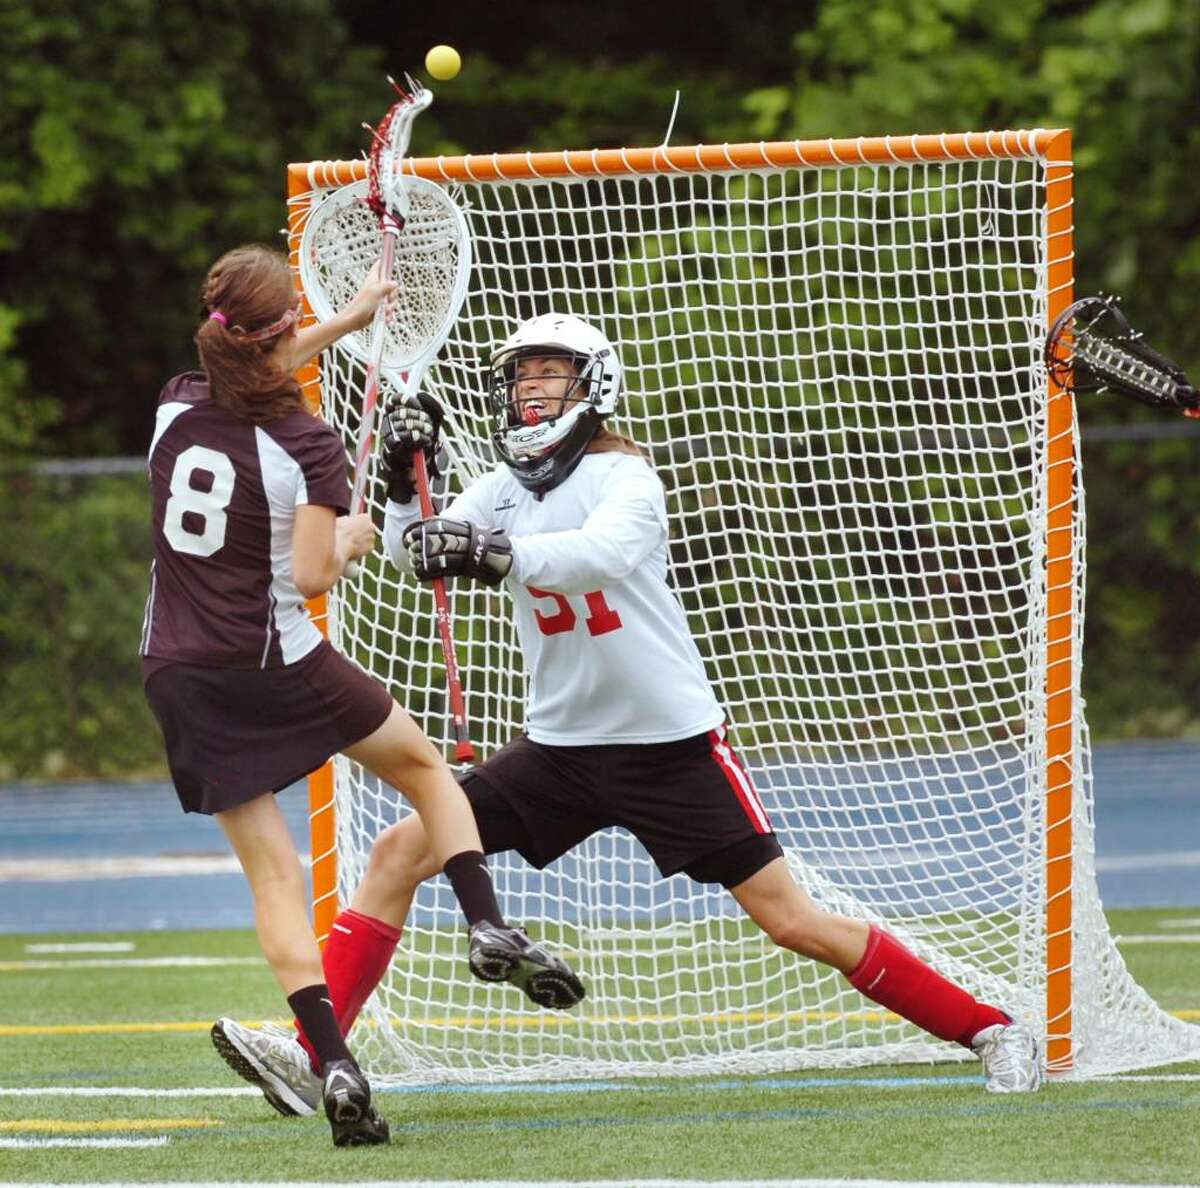 Olivia Hompe, #8, of New Canaan High School, left, scores the lst goal of the game against Greenwich High School goalie, Kaitlin Bedford, # 51, during the 2010 Girls Lacrosse State Division 1 Finals at Bunnell High School, Stratford, Saturday afternoon, June 12, 2010. New Canaan won the championship over GHS, 10-9.